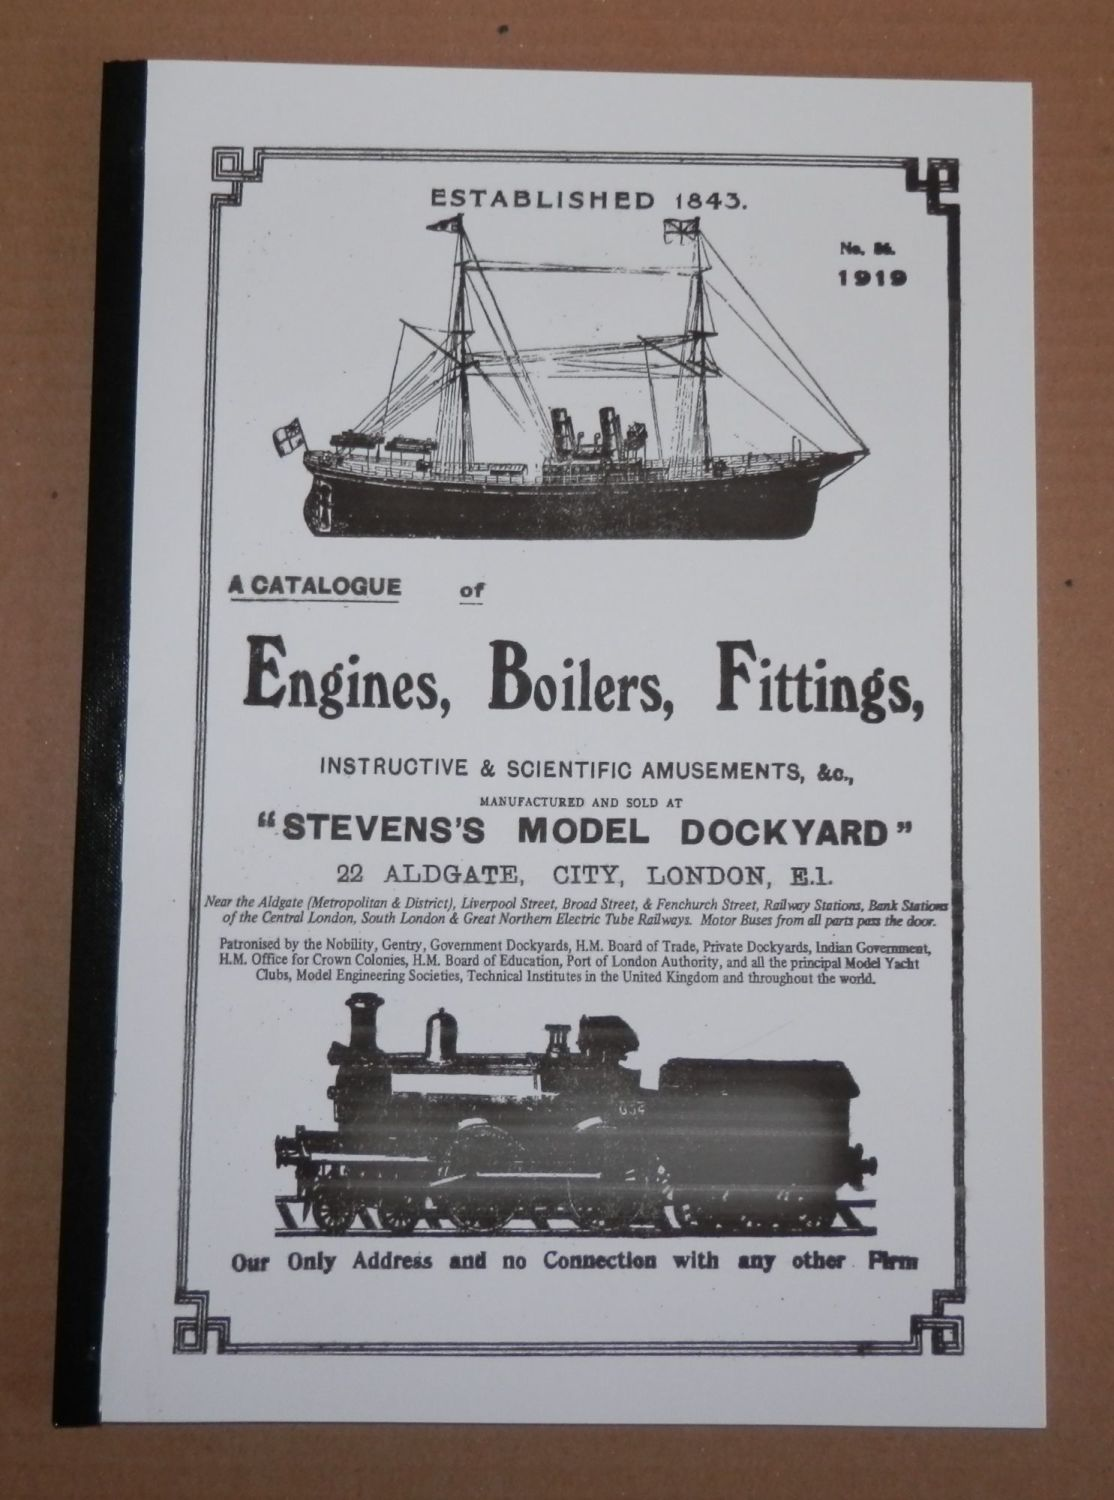 REMASTERED 1919 STEVENS MODEL DOCKYARD CATALOGUE.. ENGINES BOILERS & FITTIN